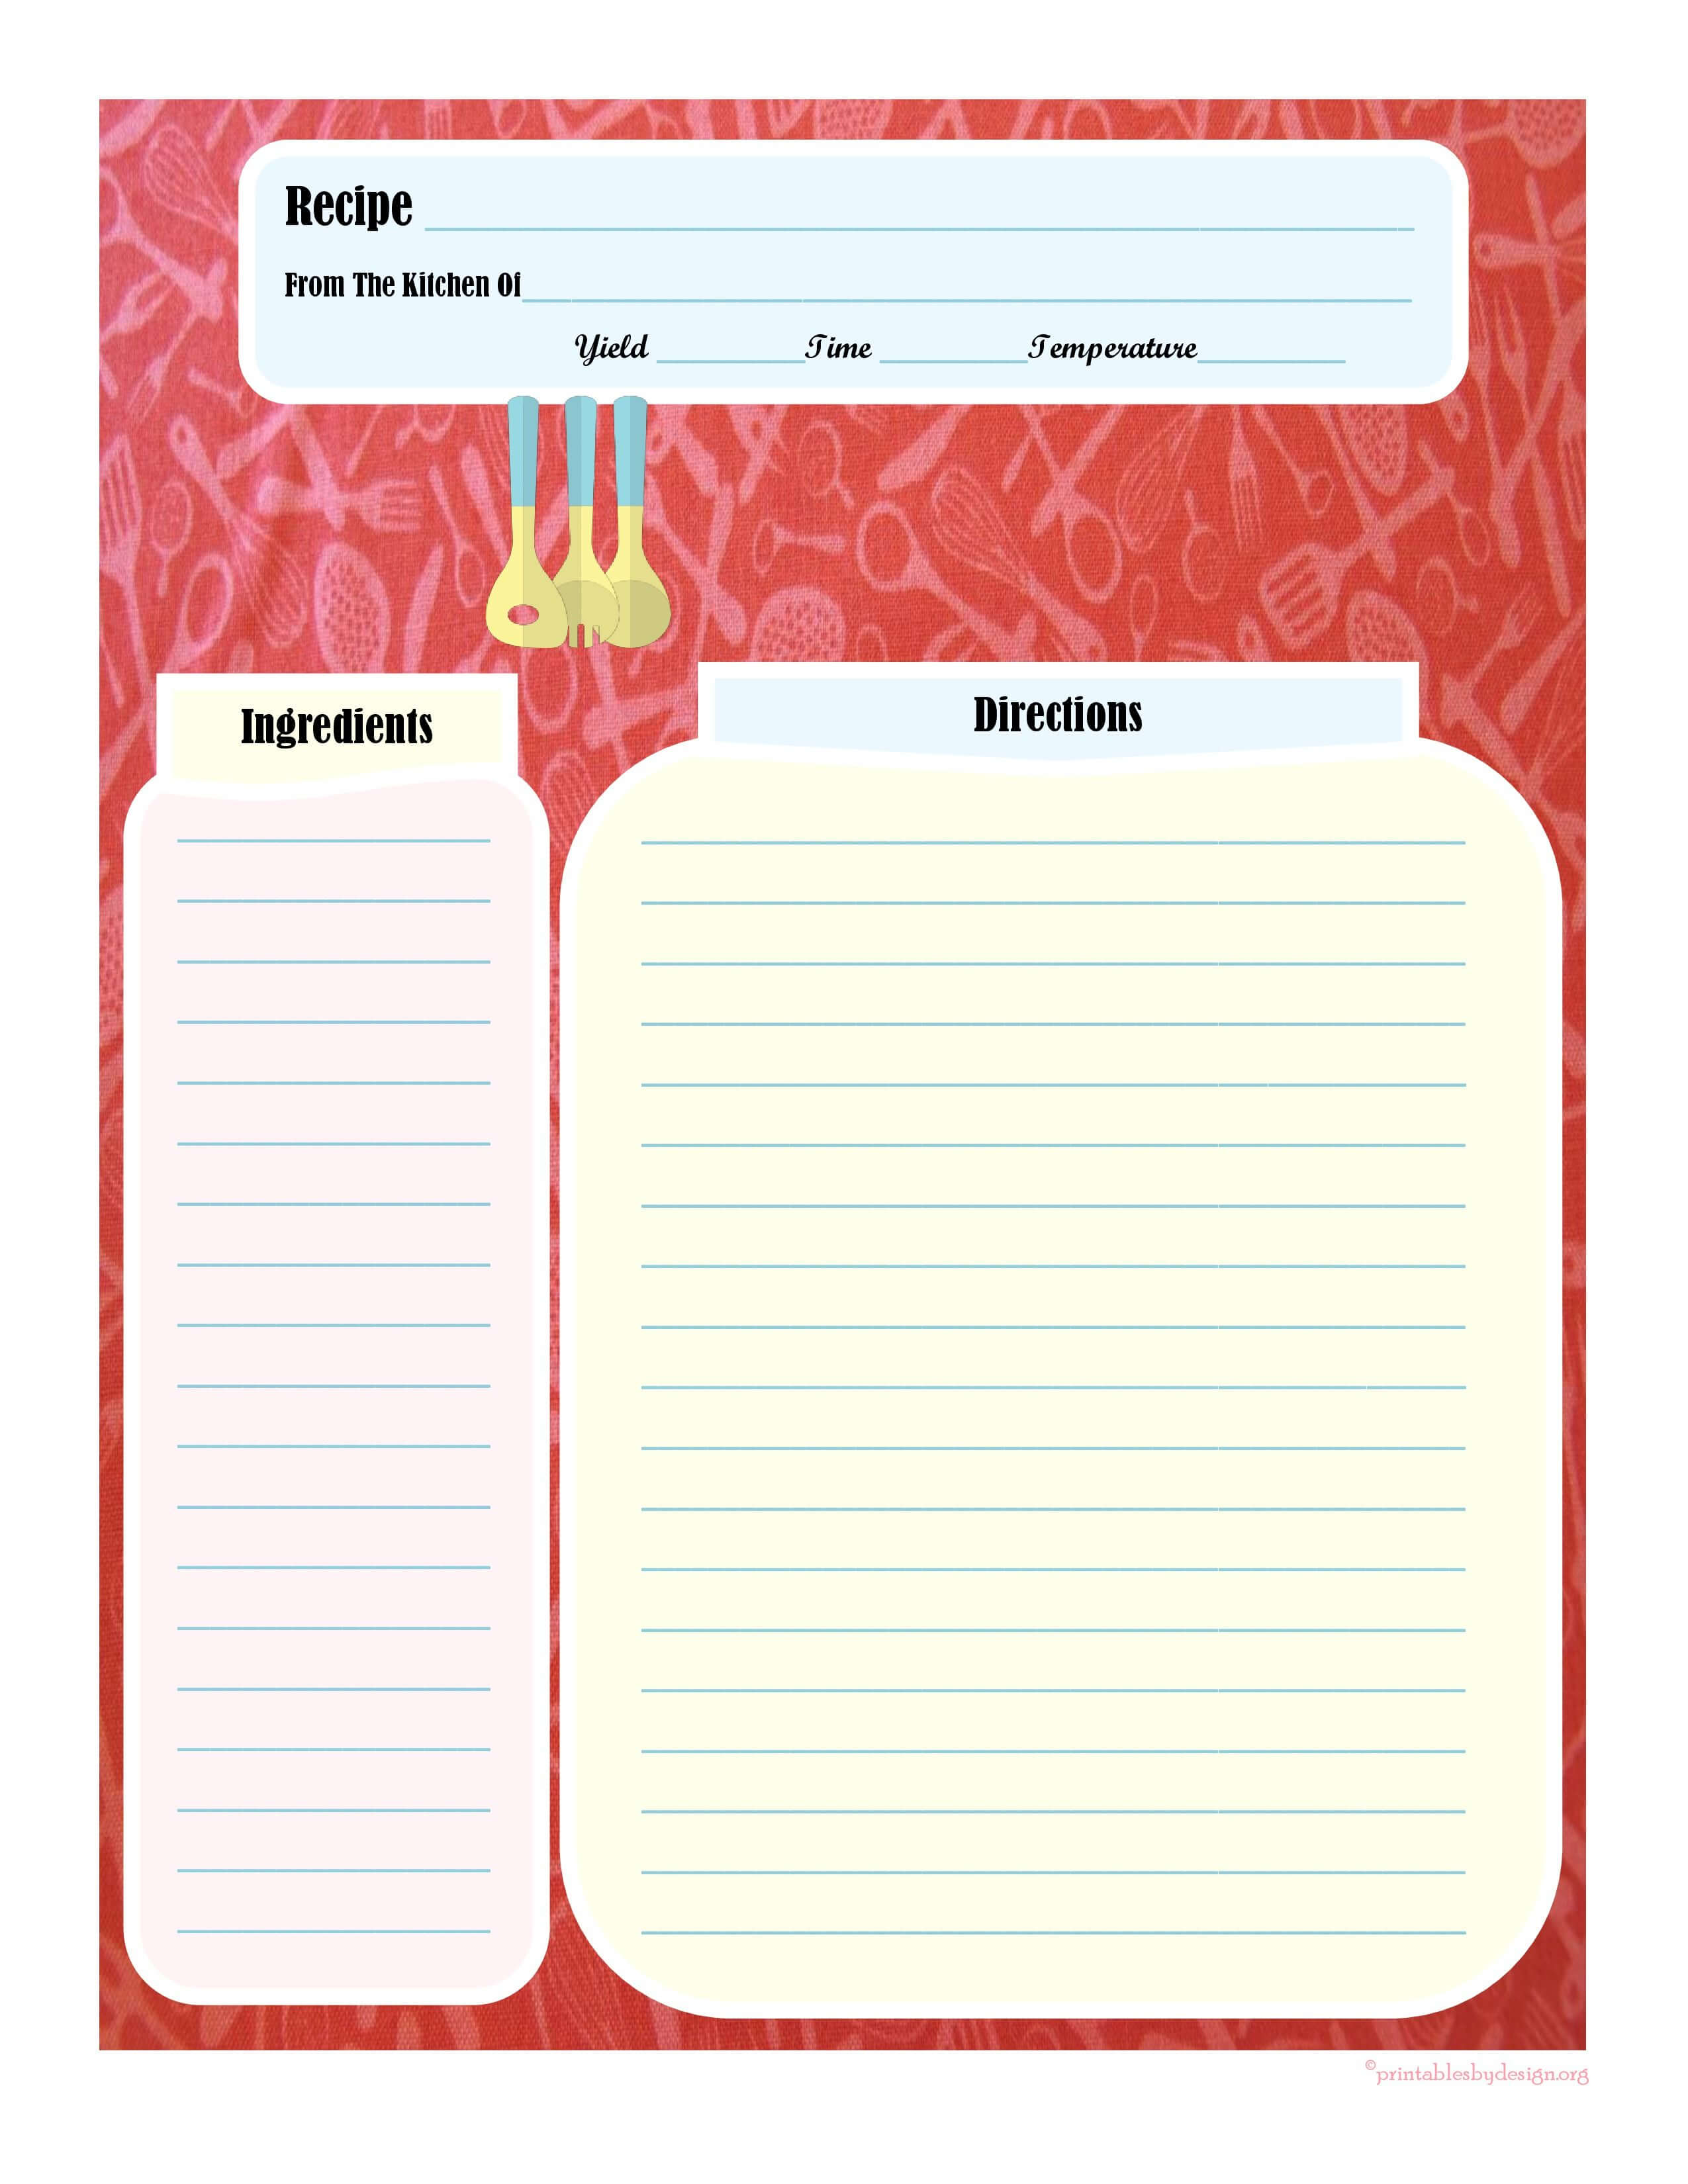 005 Template Ideas Fillable Recipe Card Impressive Free For Intended For Fillable Recipe Card Template